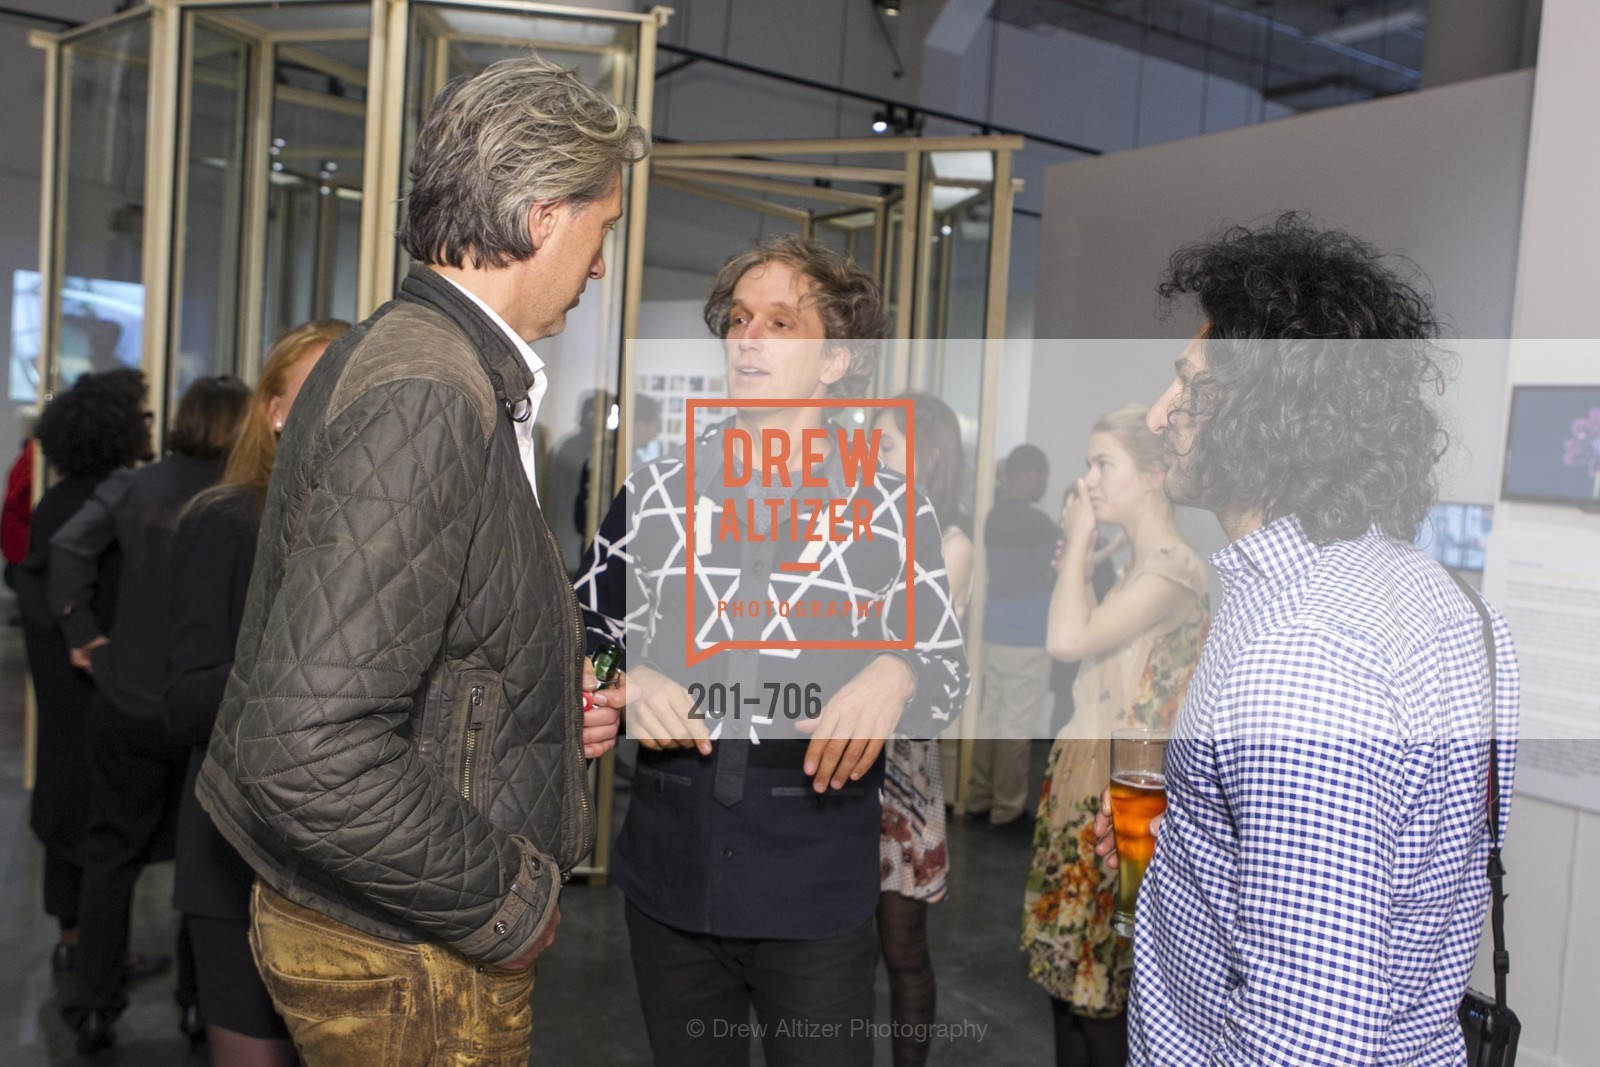 Marcel Wanders, Yves Behar, Massoud Hassani, Exhibit Opening at the MUSEUM OF CRAFT AND DESIGN - Hands Off: New Dutch Design at the Confluence of Technology & Craft, US, May 8th, 2015,Drew Altizer, Drew Altizer Photography, full-service agency, private events, San Francisco photographer, photographer california